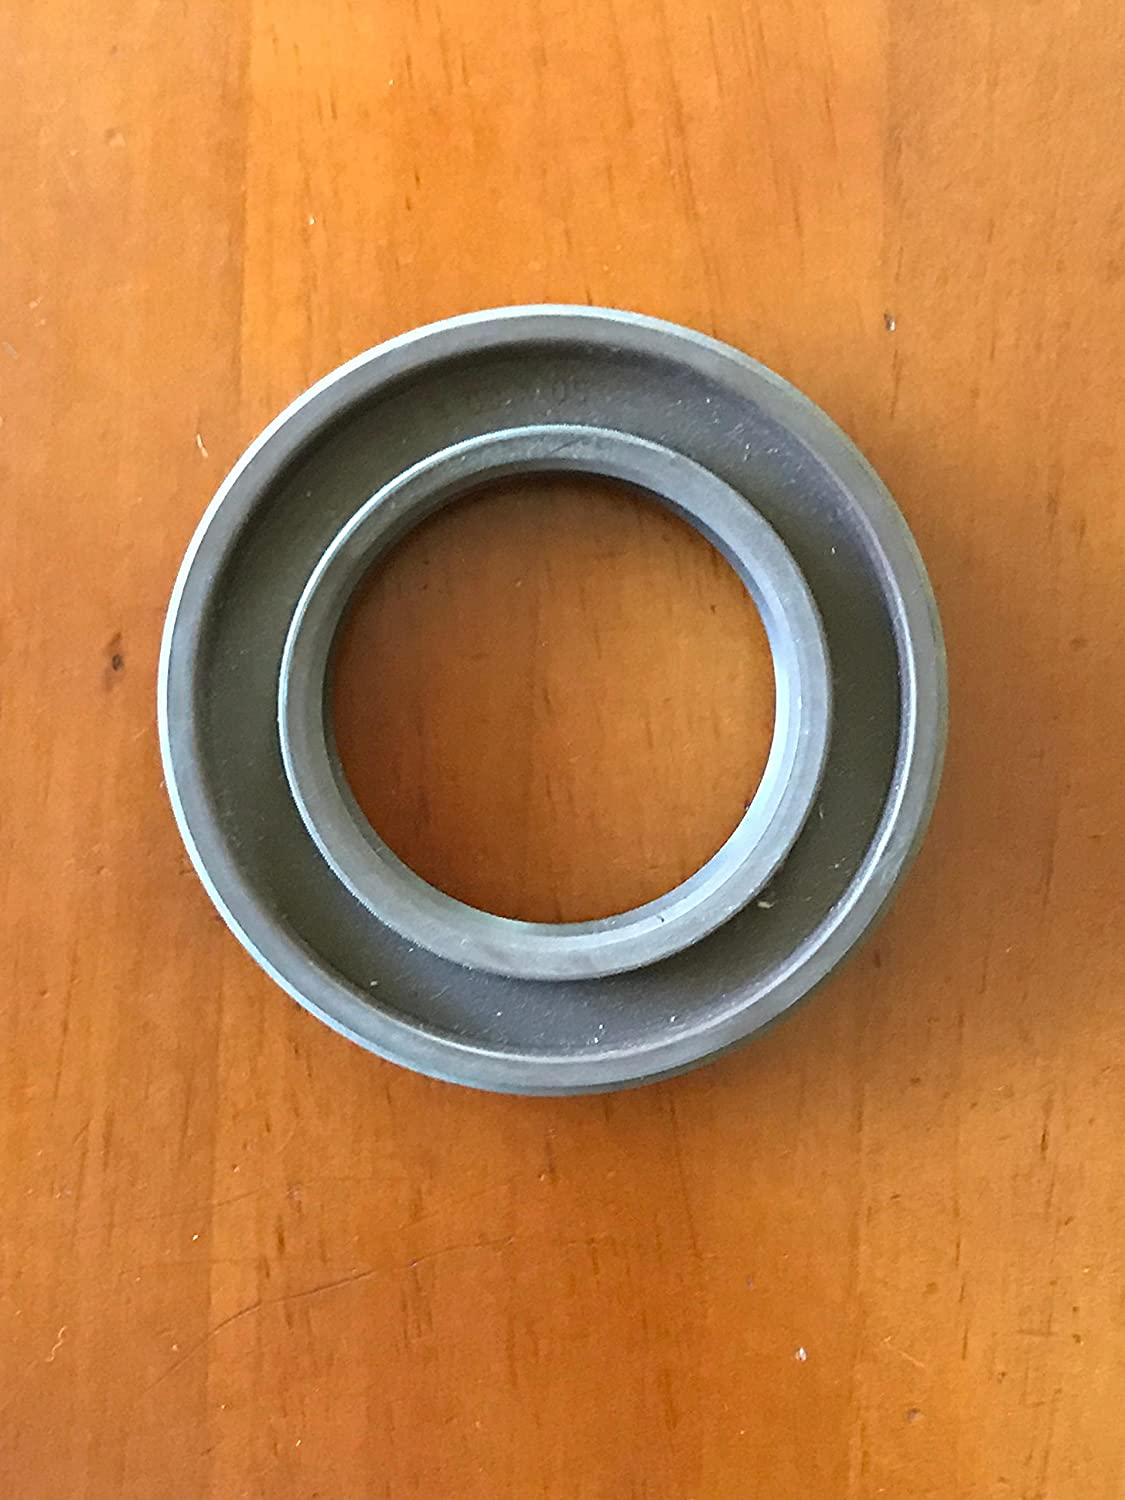 Seal Ring double sided seal for Firbimatic, Union, Realstar G1341 #1003012